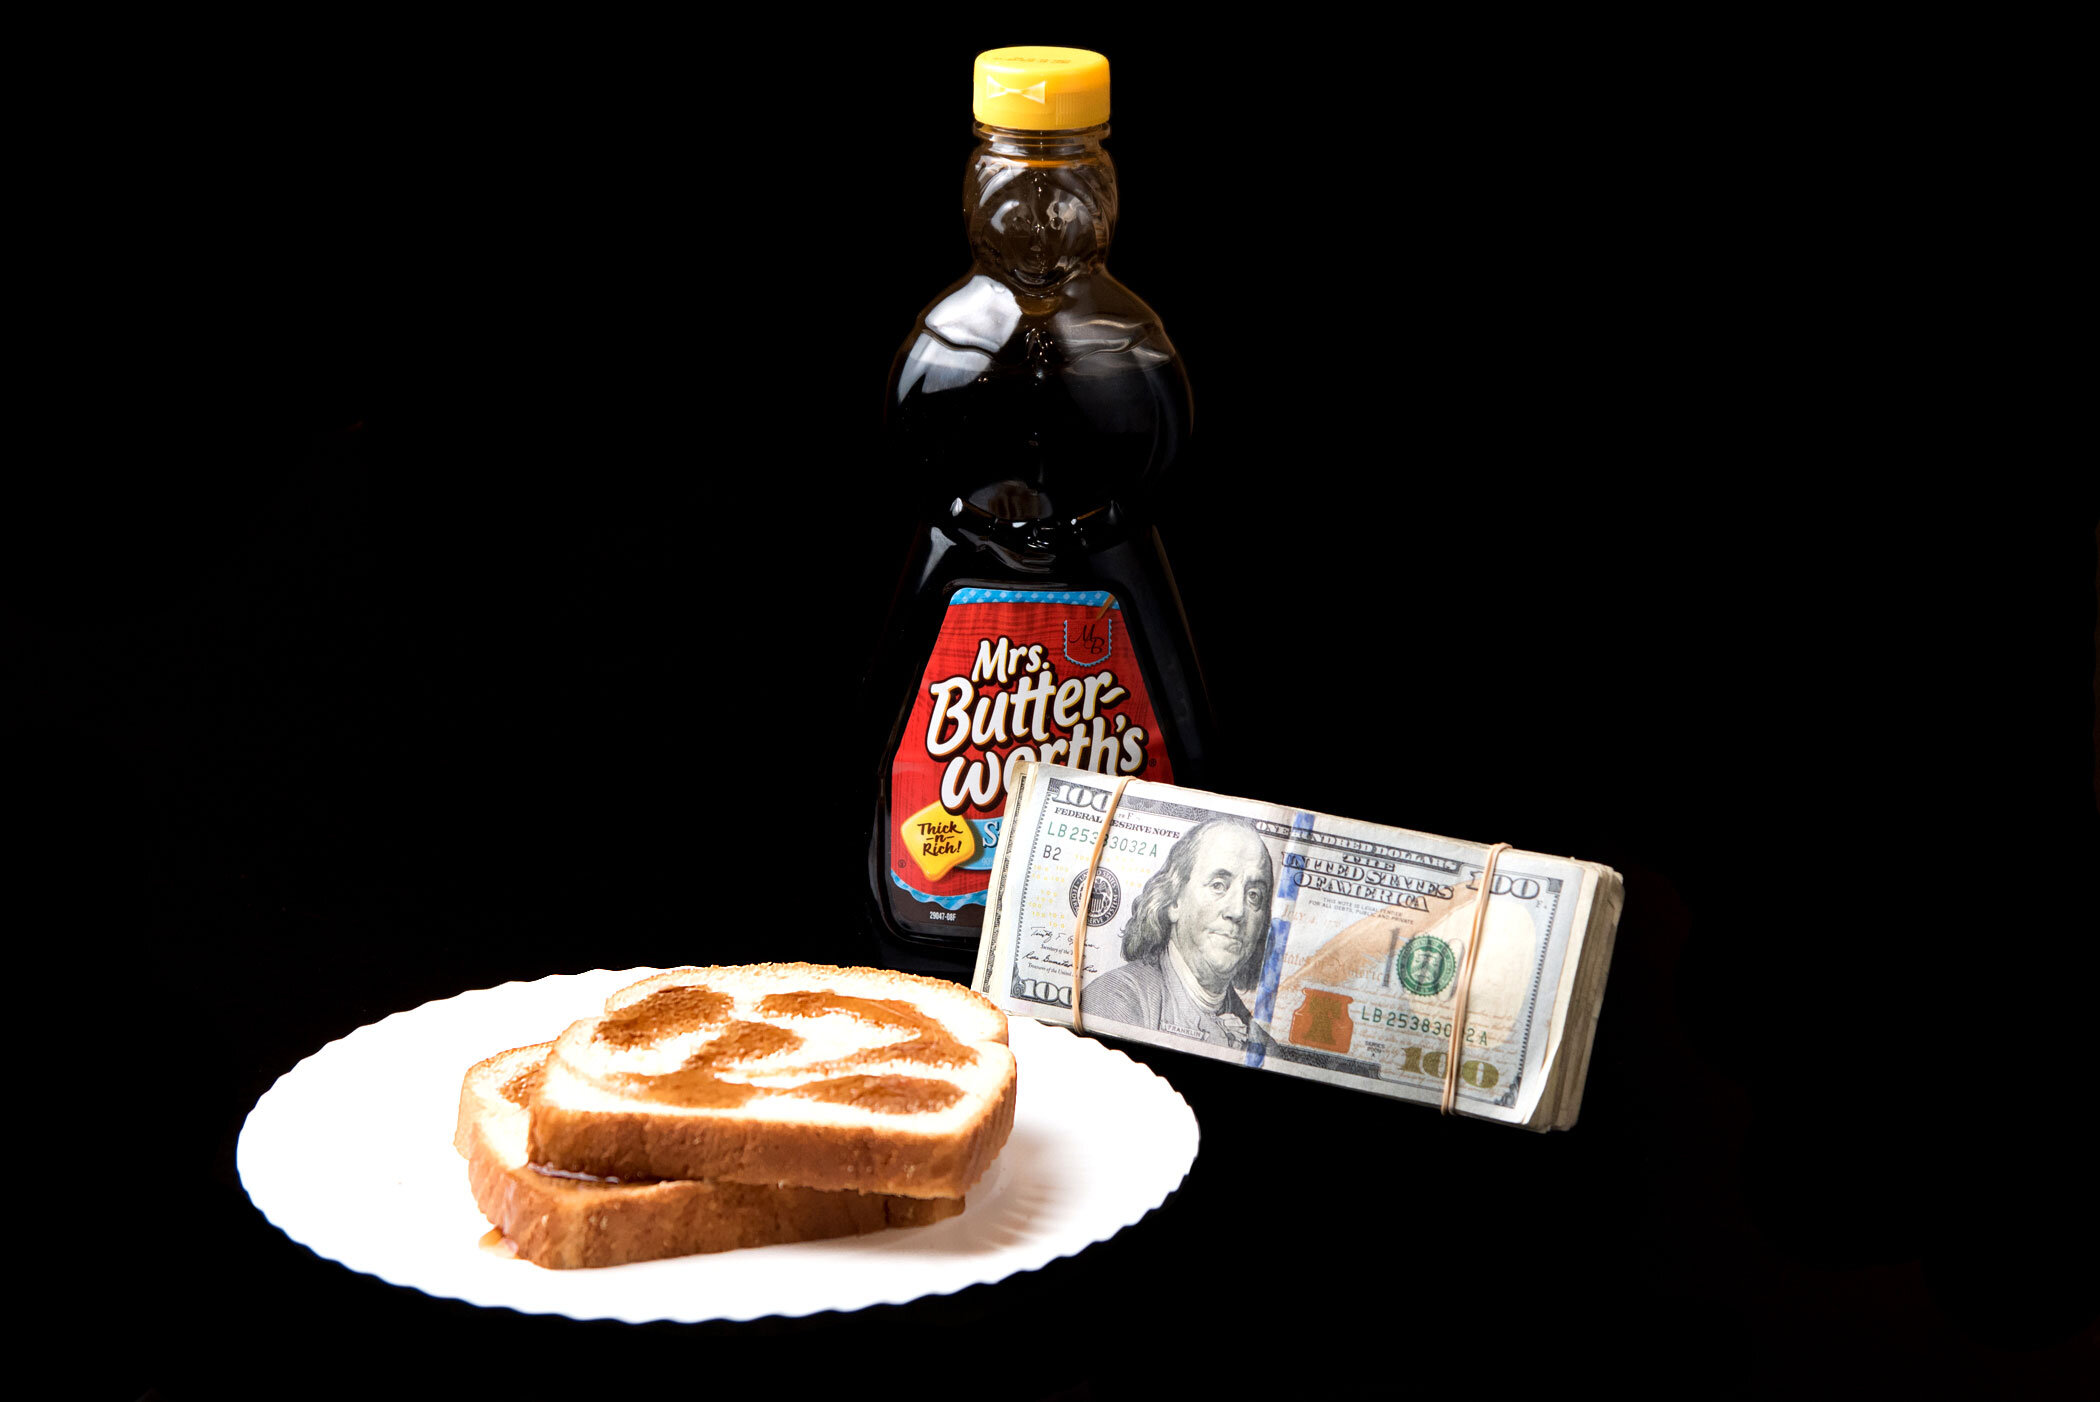 """""""Ayy, I remember syrup sandwiches and crime allowances, Finesse a nigga with some counterfeits, but now I'm countin' this"""" - Kendrick Lamar, """"HUMBLE."""""""